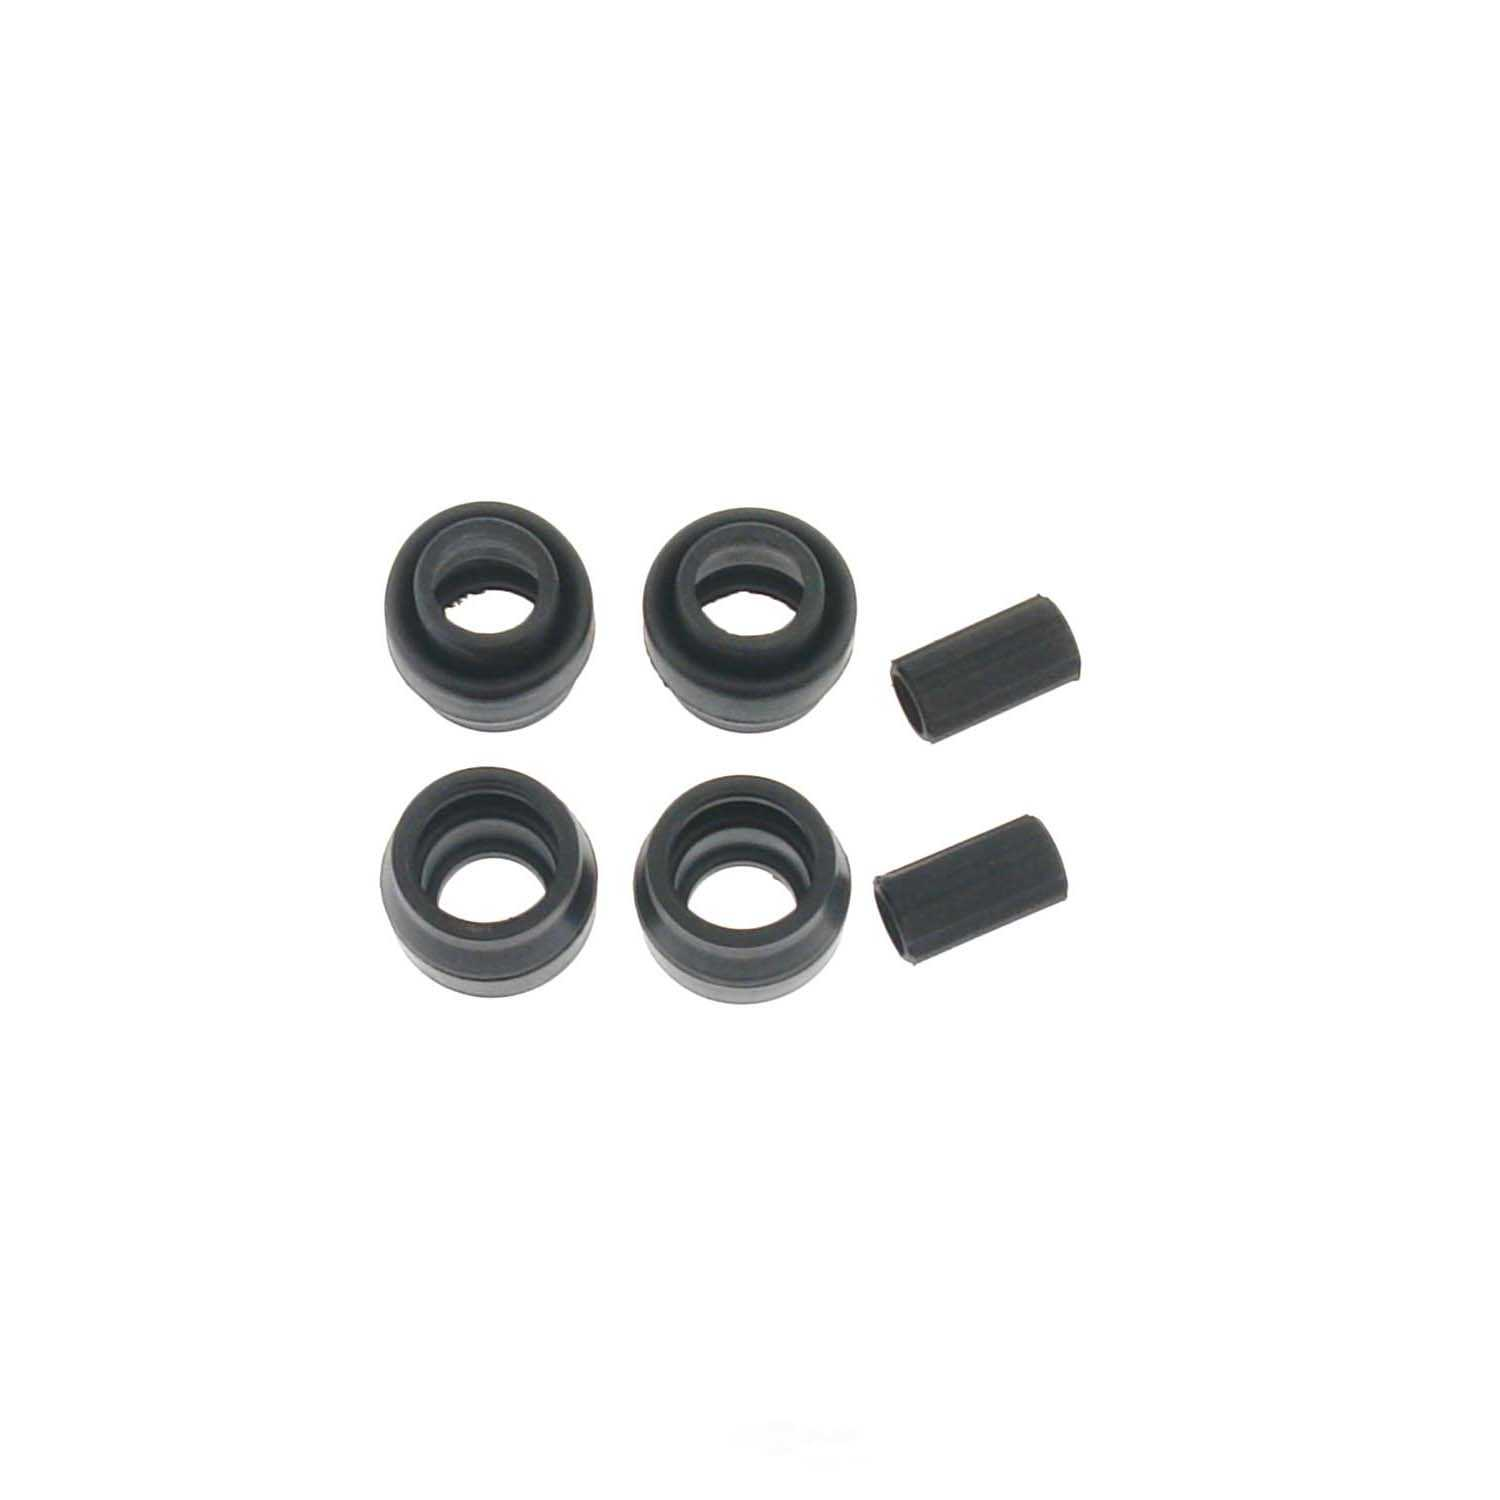 CARLSON QUALITY BRAKE PARTS - Pin Boot Kit - CRL 16089